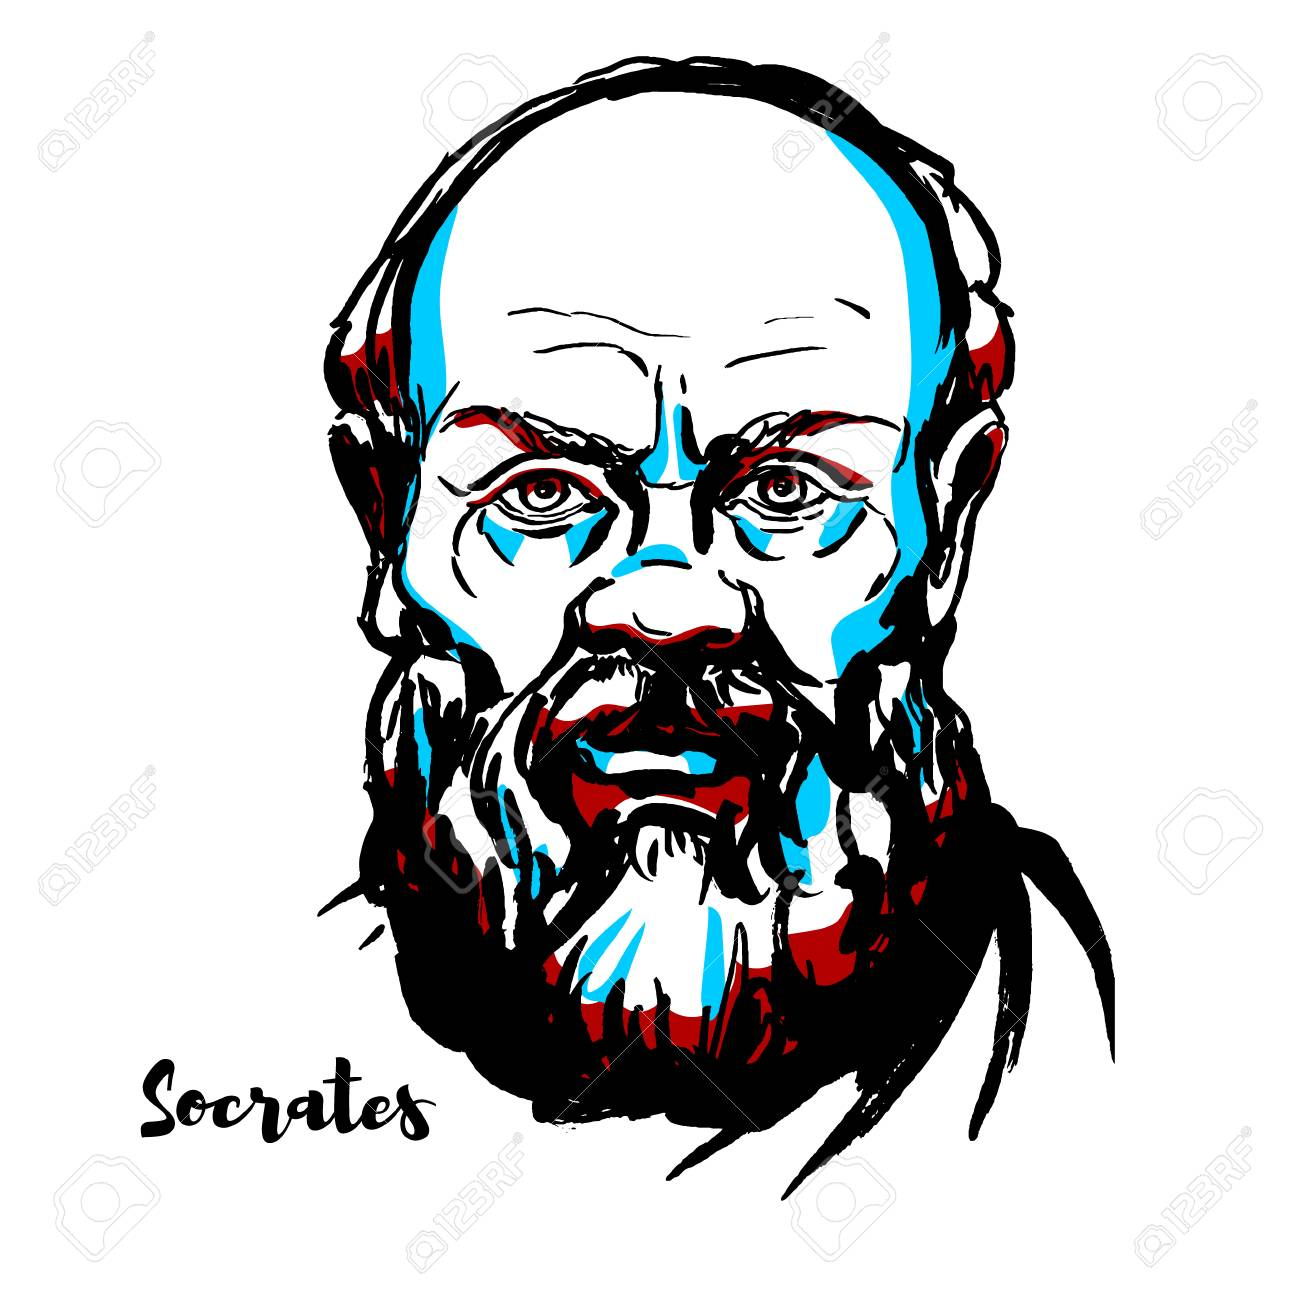 Socrates engraved vector portrait with ink contours. Classical Greek (Athenian) philosopher credited as one of the founders of Western philosophy, and as being the first moral philosopher,of the Western ethical tradition of thought. - 110296556